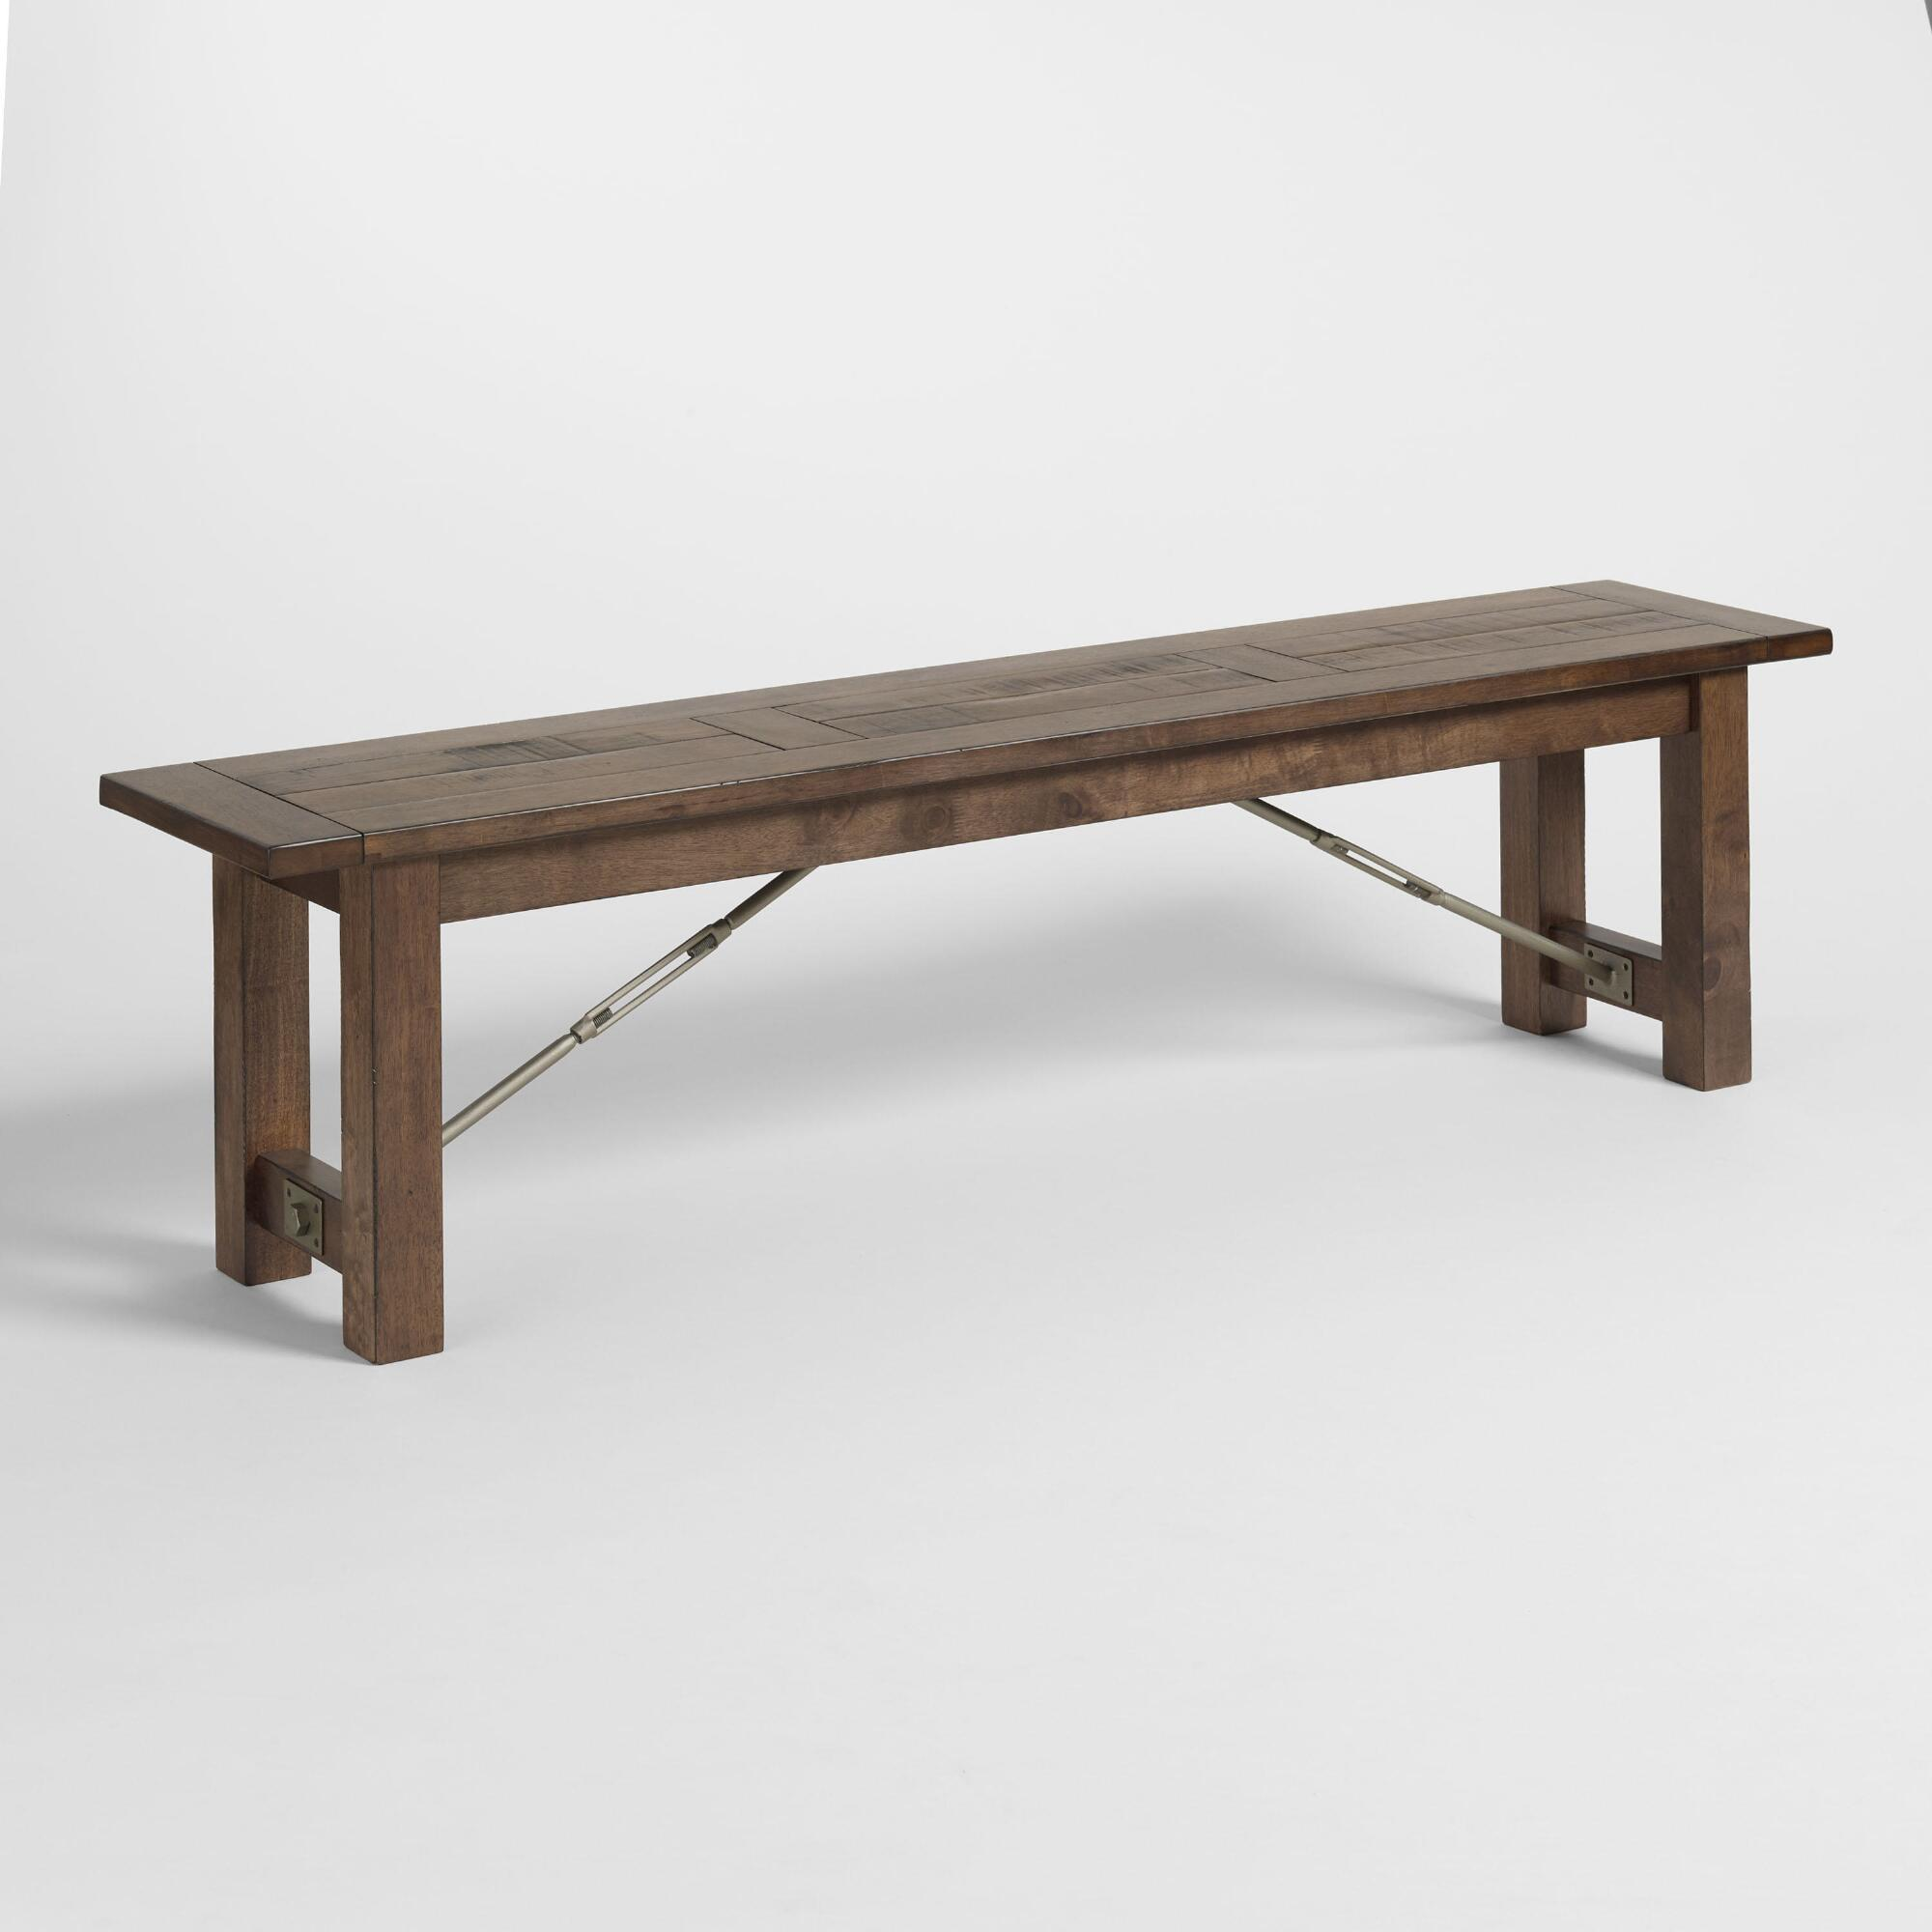 Dining Table With A Bench: Wood Garner Dining Bench